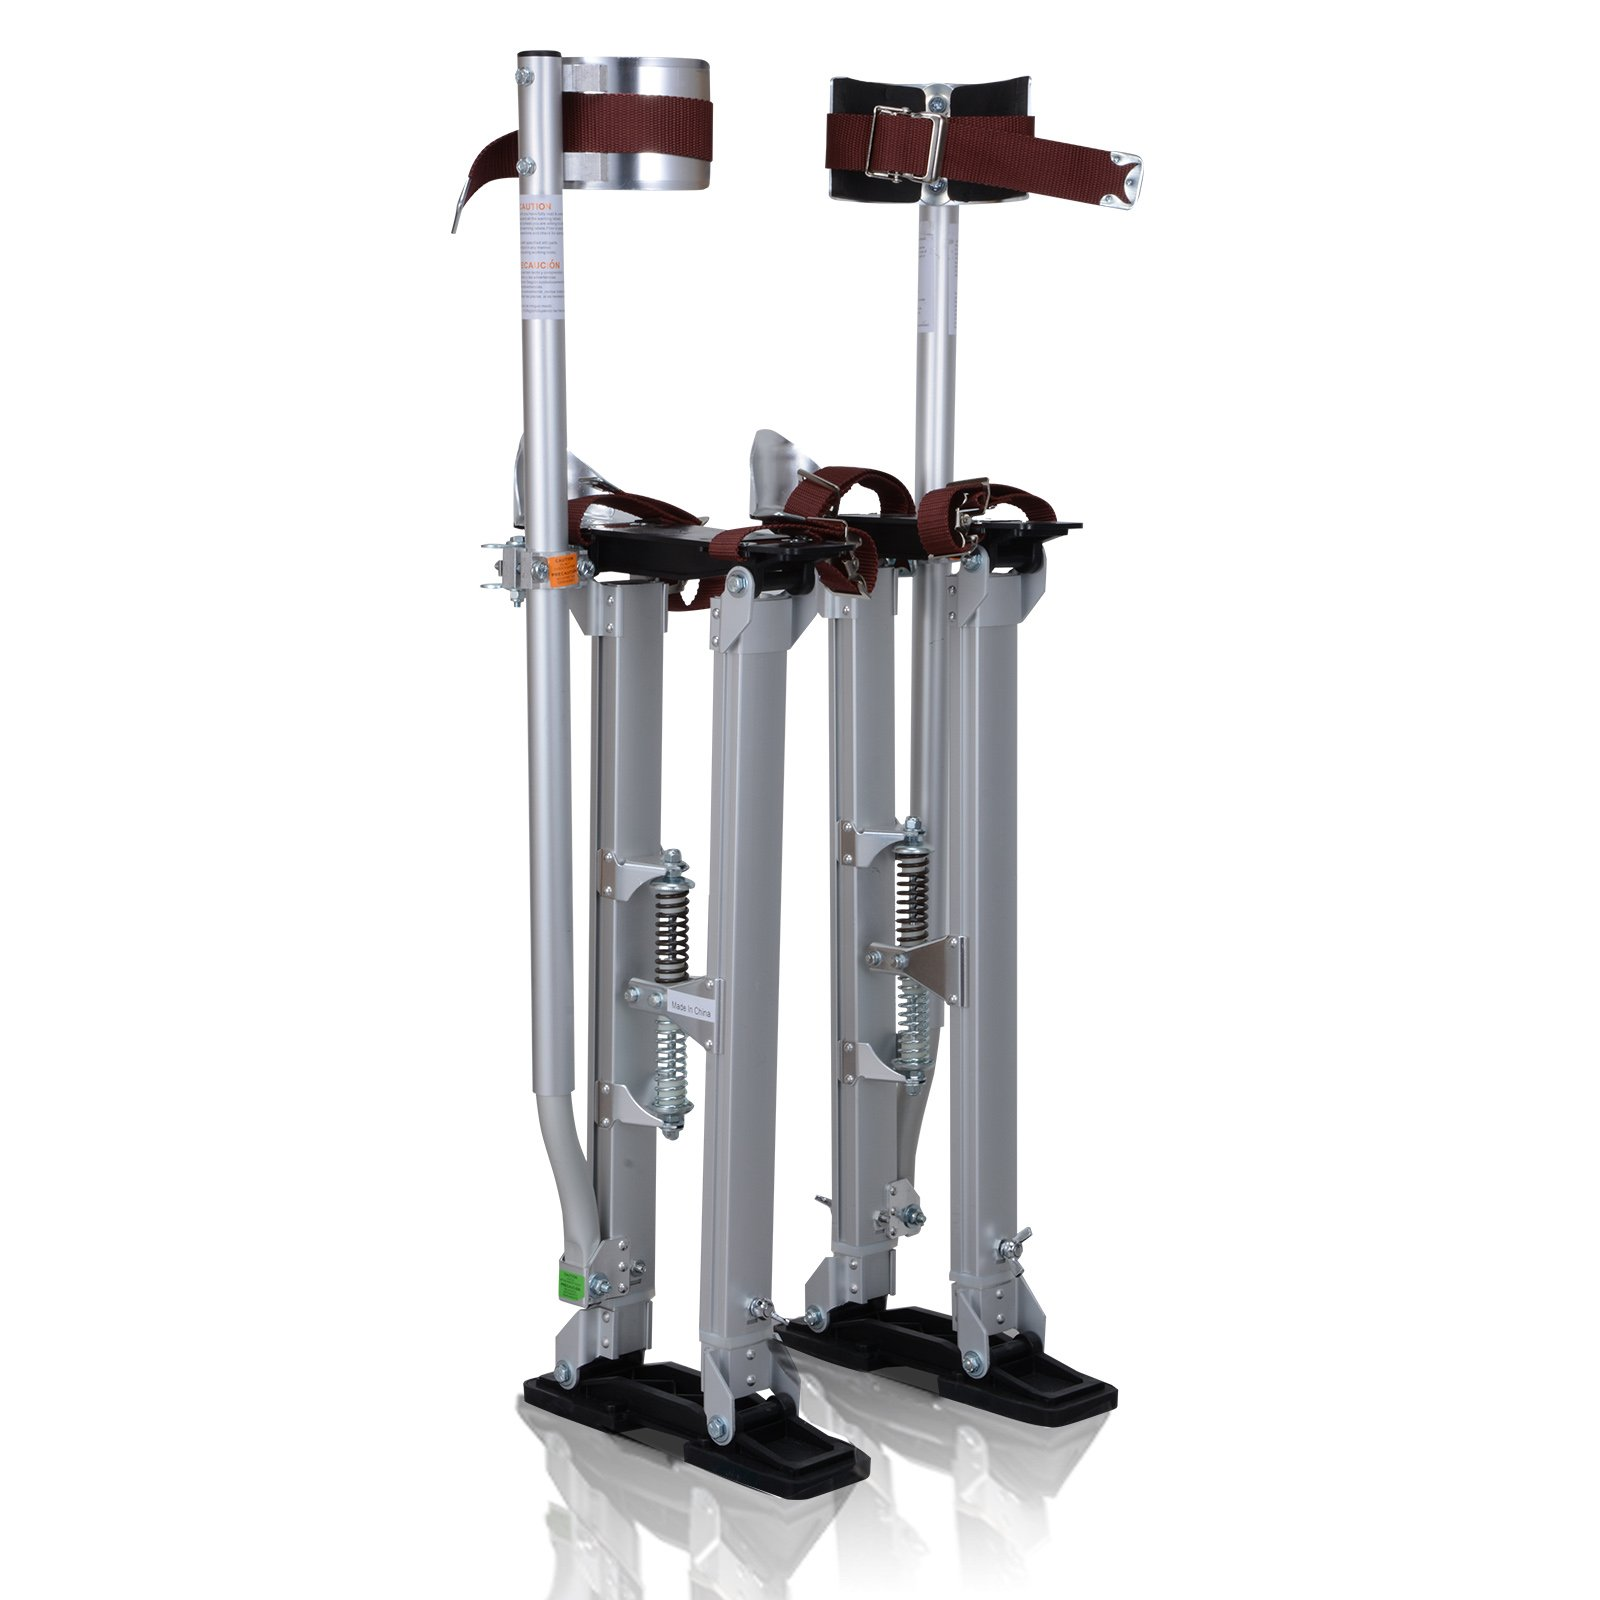 Voilamart Drywall Stilts 24''-40'' Adjustable Aluminum Painting Stilts Lifts Tool for Painter Taping Cleaning Ceiling Finishing - Silver